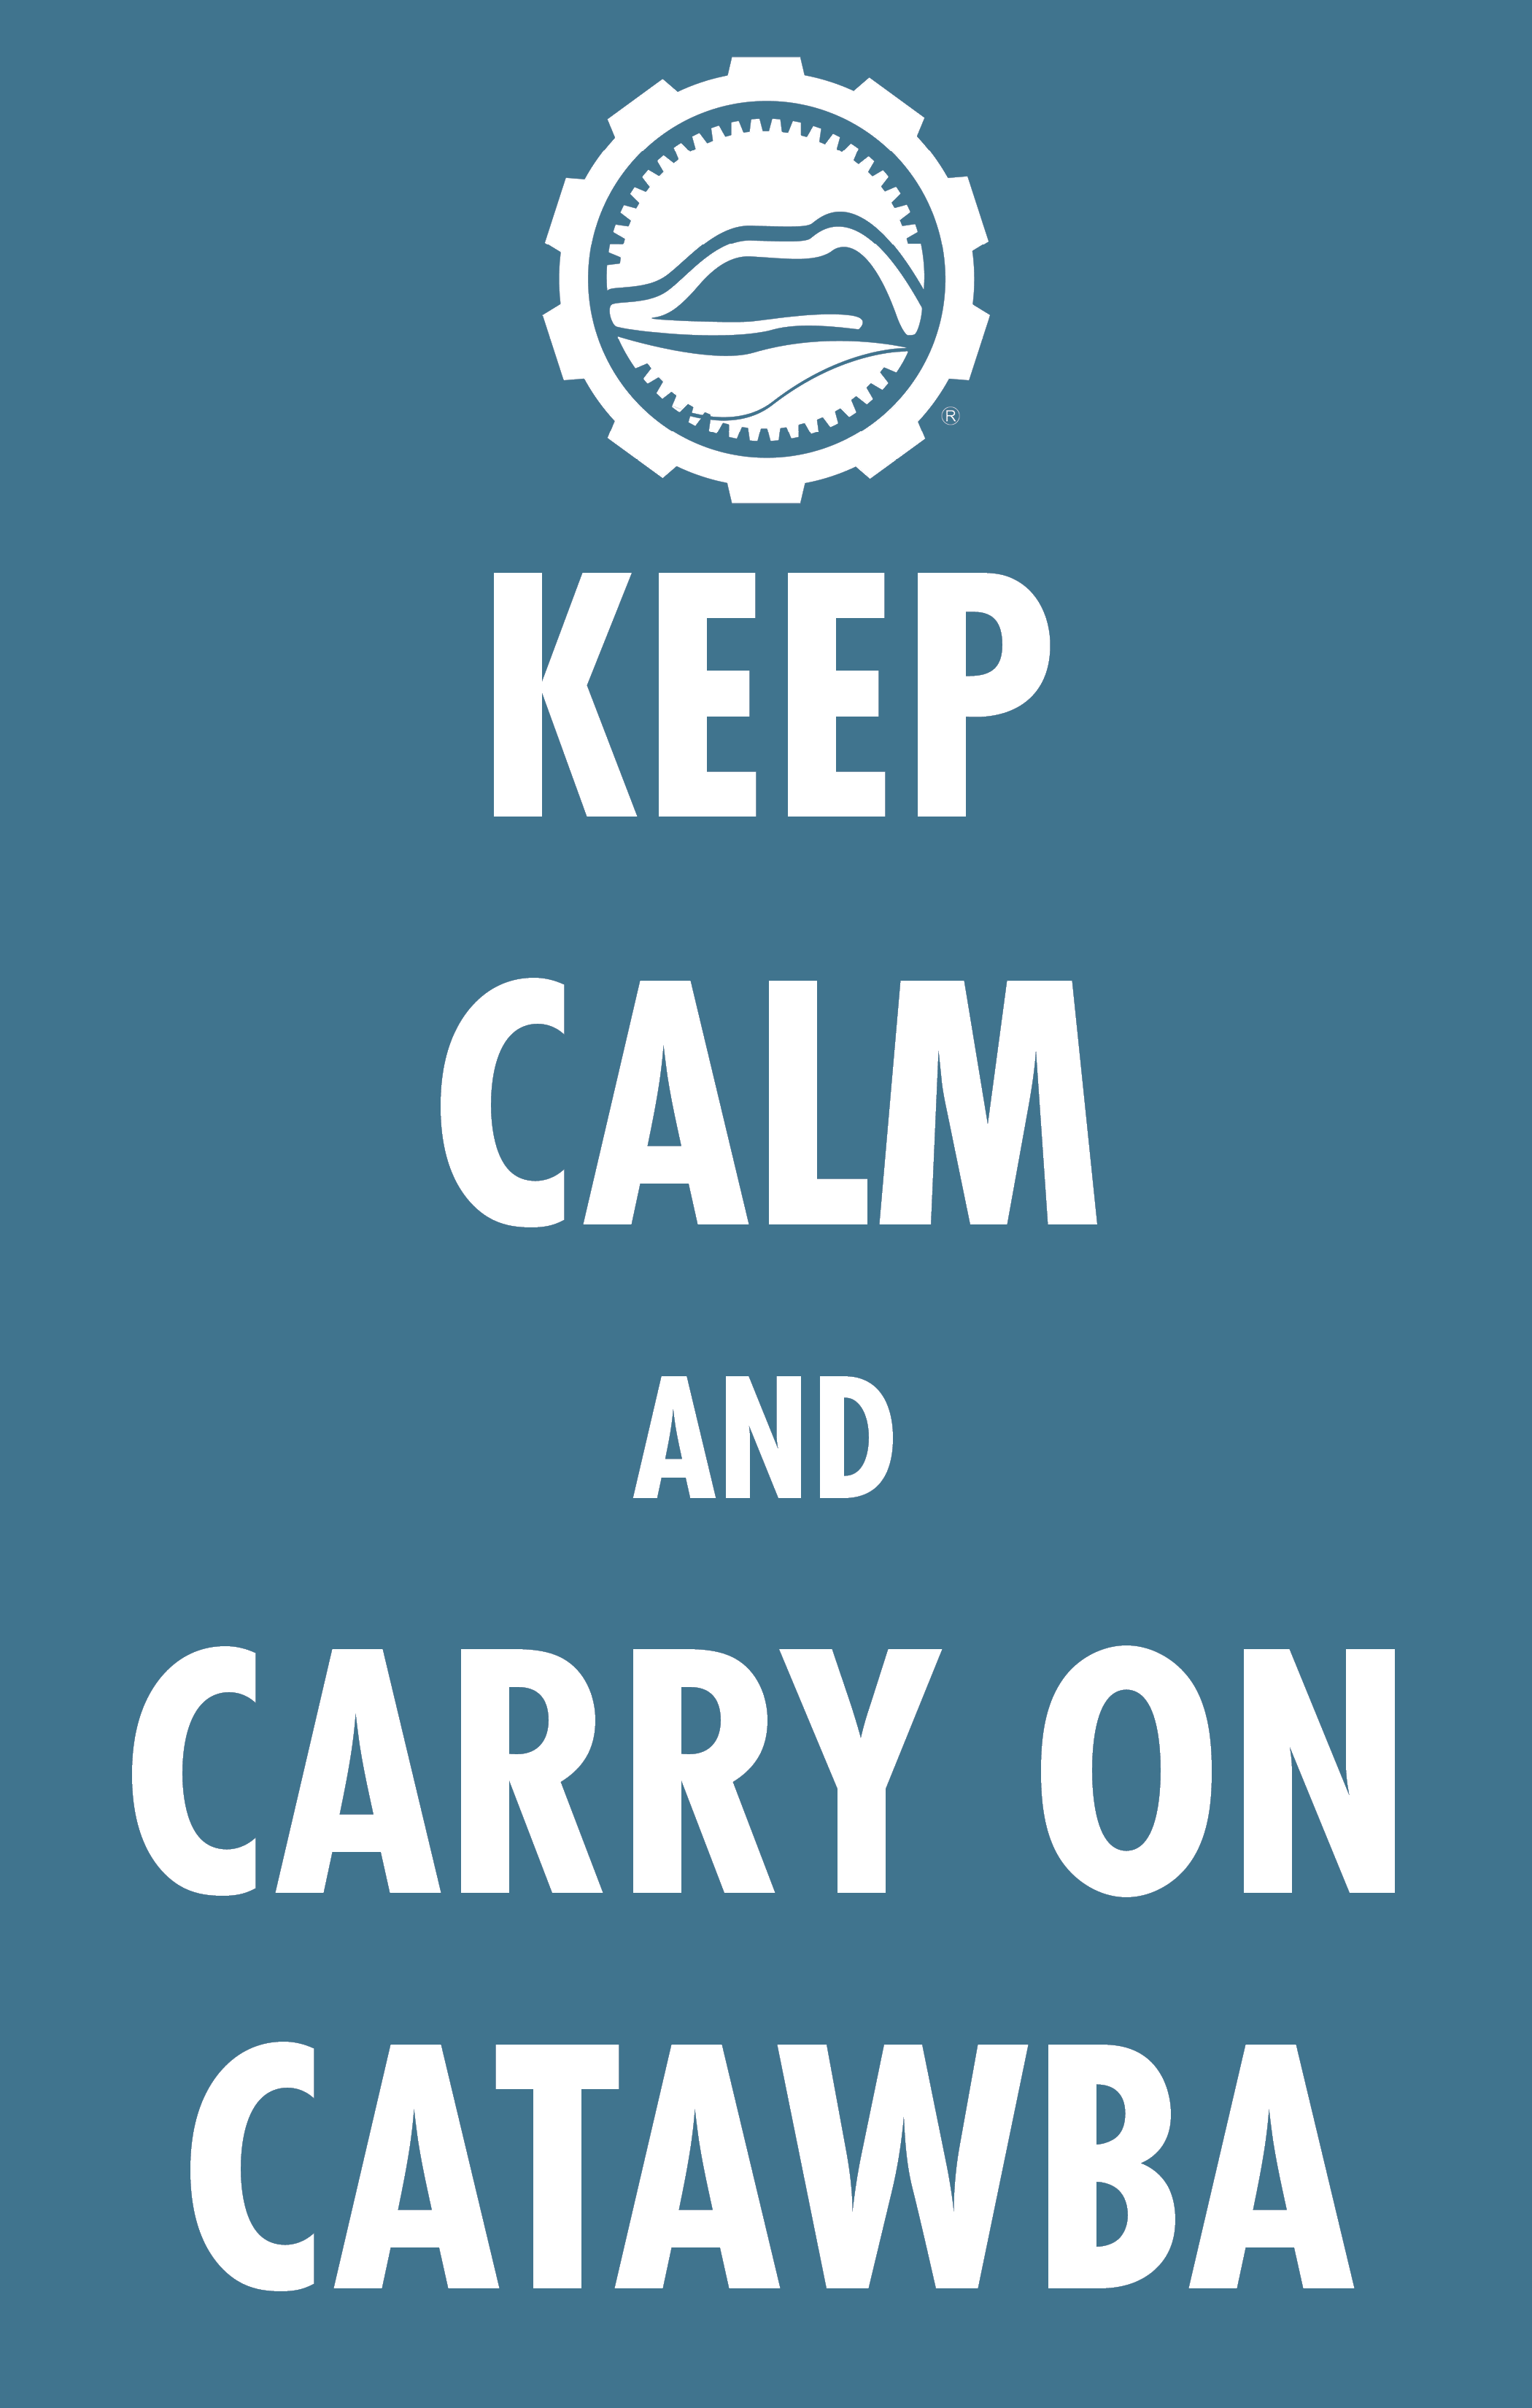 Keep Calm and Carry On Catawba